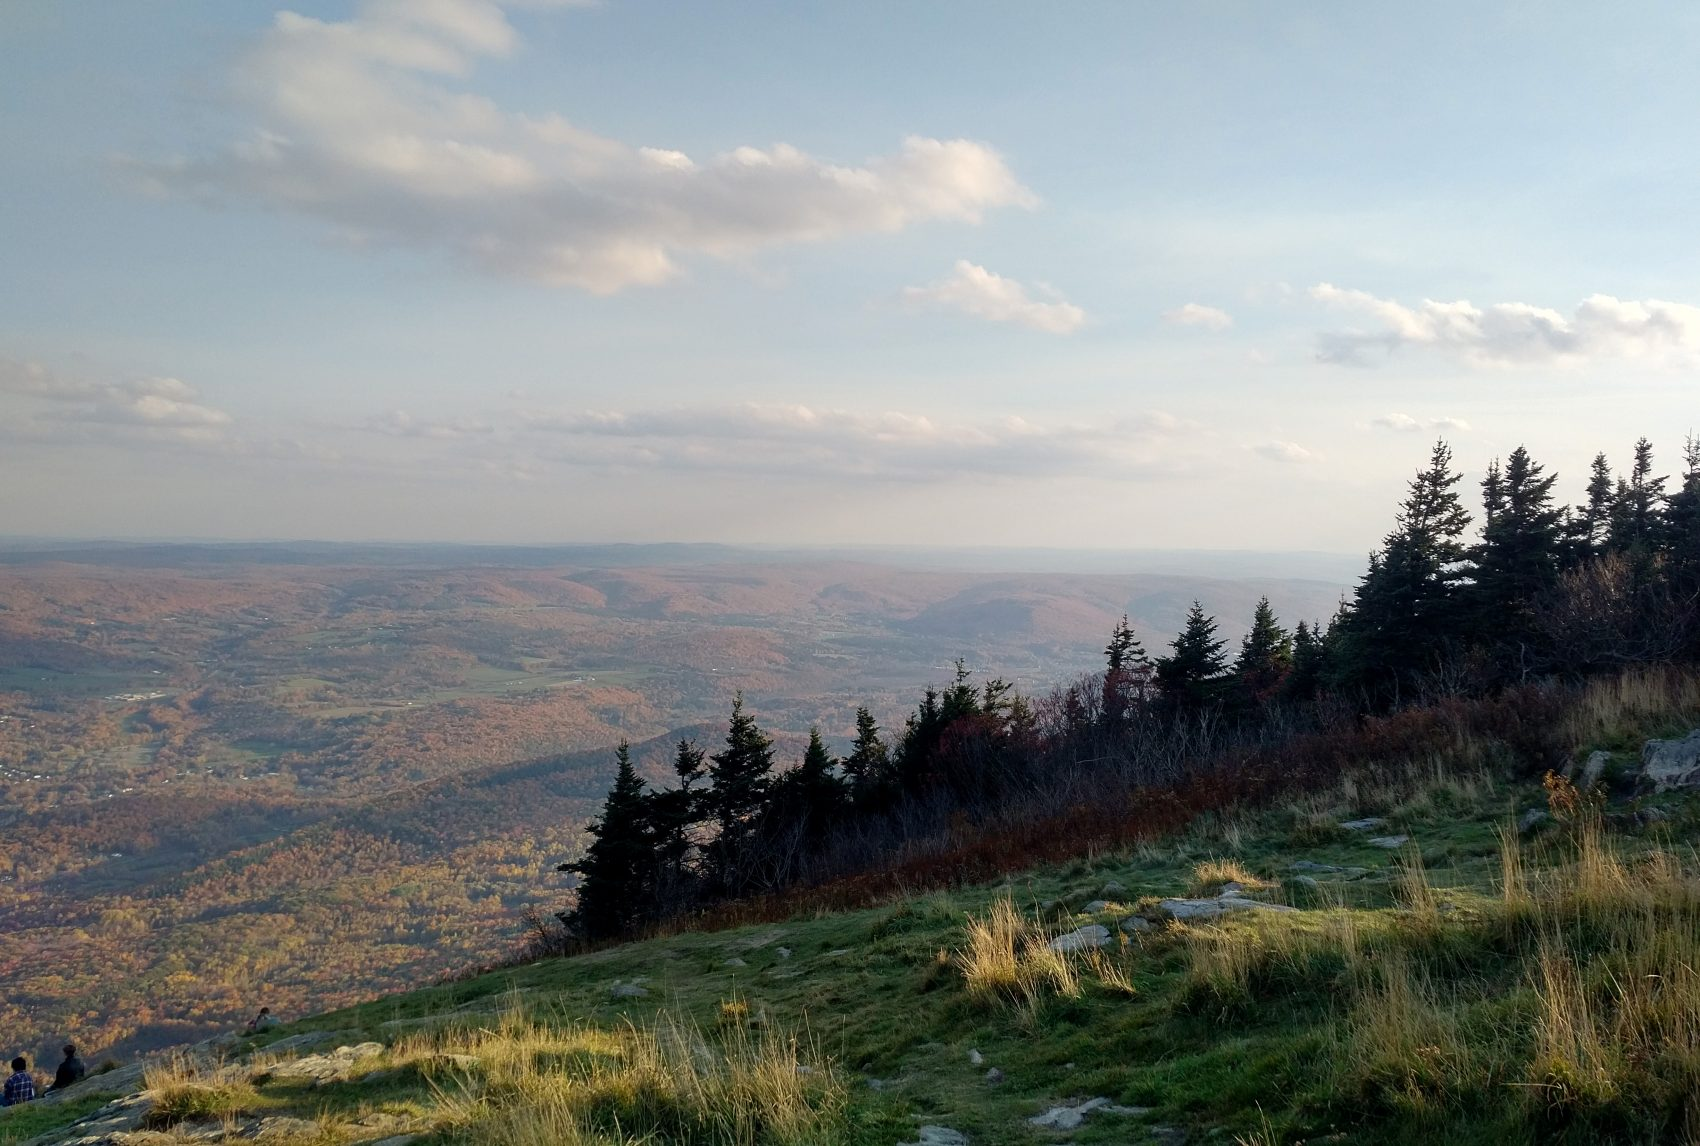 The view from Mount Greylock looking east into the town of Adams. (Bob Shaffer/WBUR)